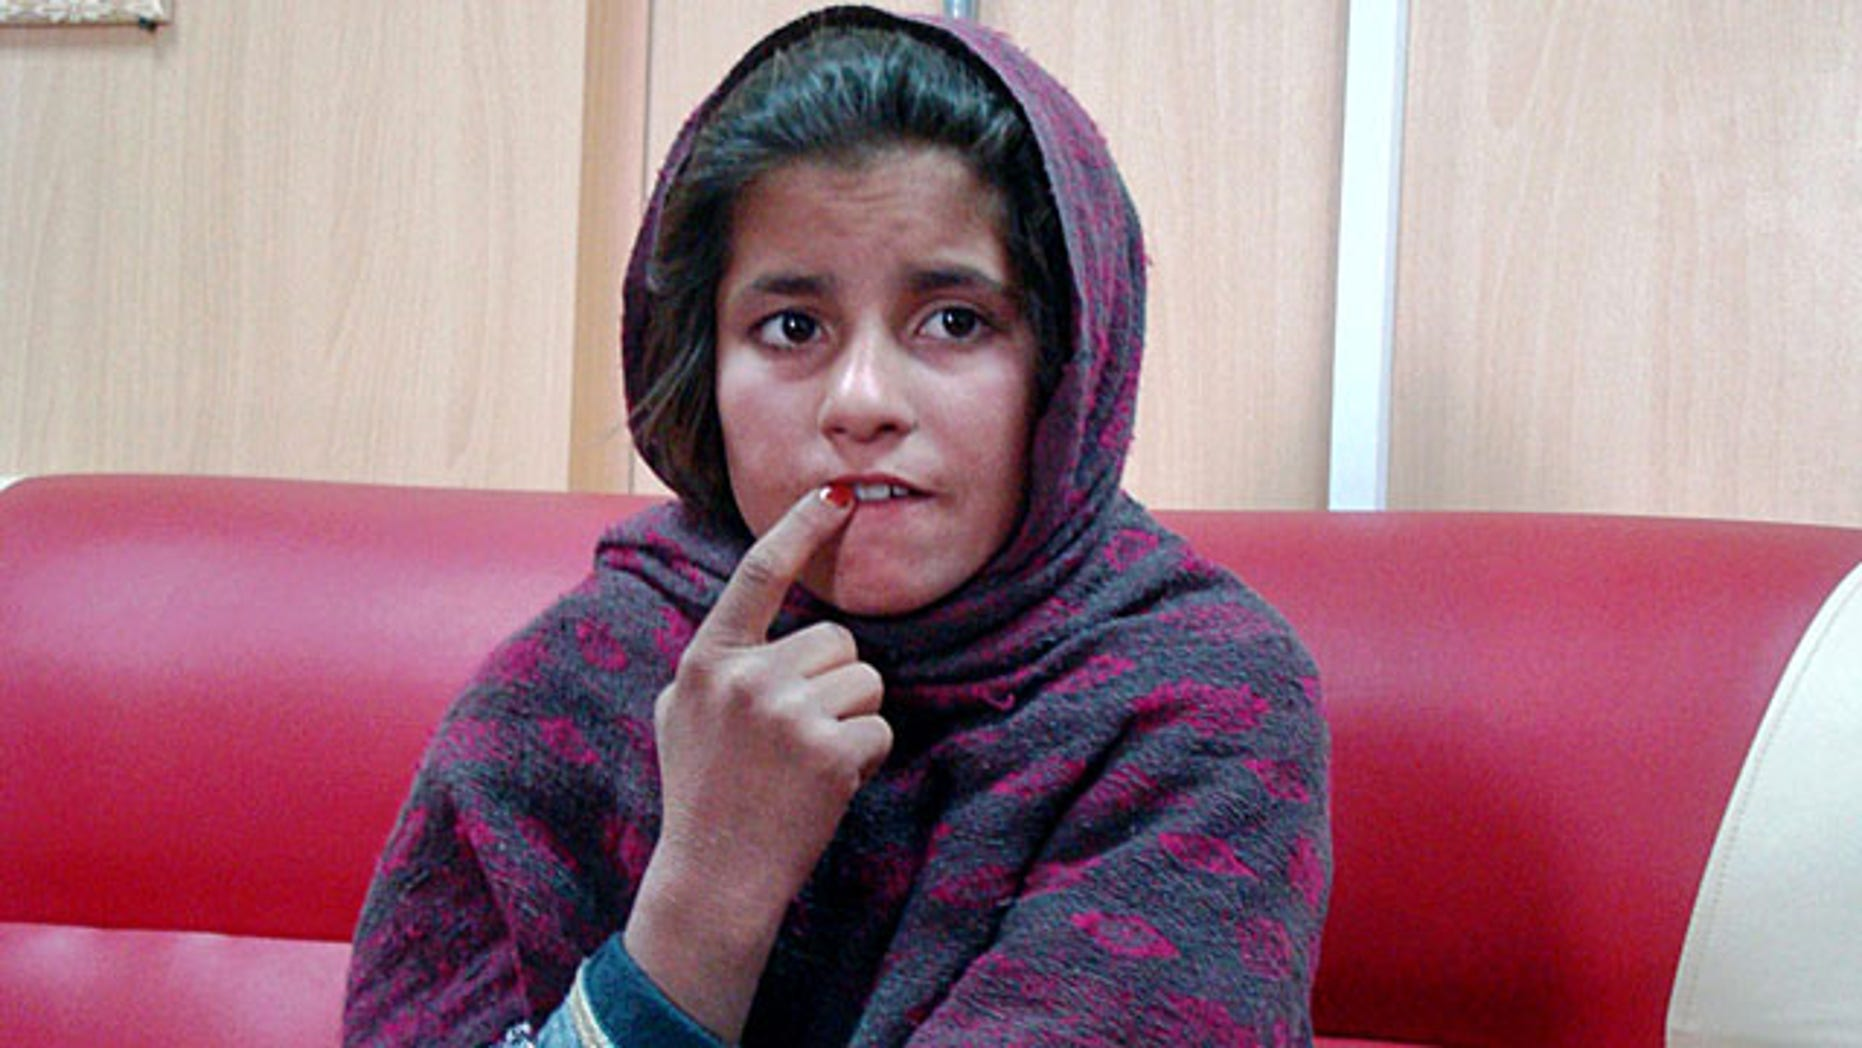 January 6, 2014: An Afghan girl named Spozhmai is held in a border police station in the Khan Neshin district in the southeastern part of Helmand province, Afghanistan. The 10-year-old told police that her brother, who she said is a Taliban commander, wrapped her in an explosives-packed vest but that she refused to blow herself up at a checkpoint in Helmand province. The Taliban denied the alleged plot. (AP Photo/Abdul Khaleq)